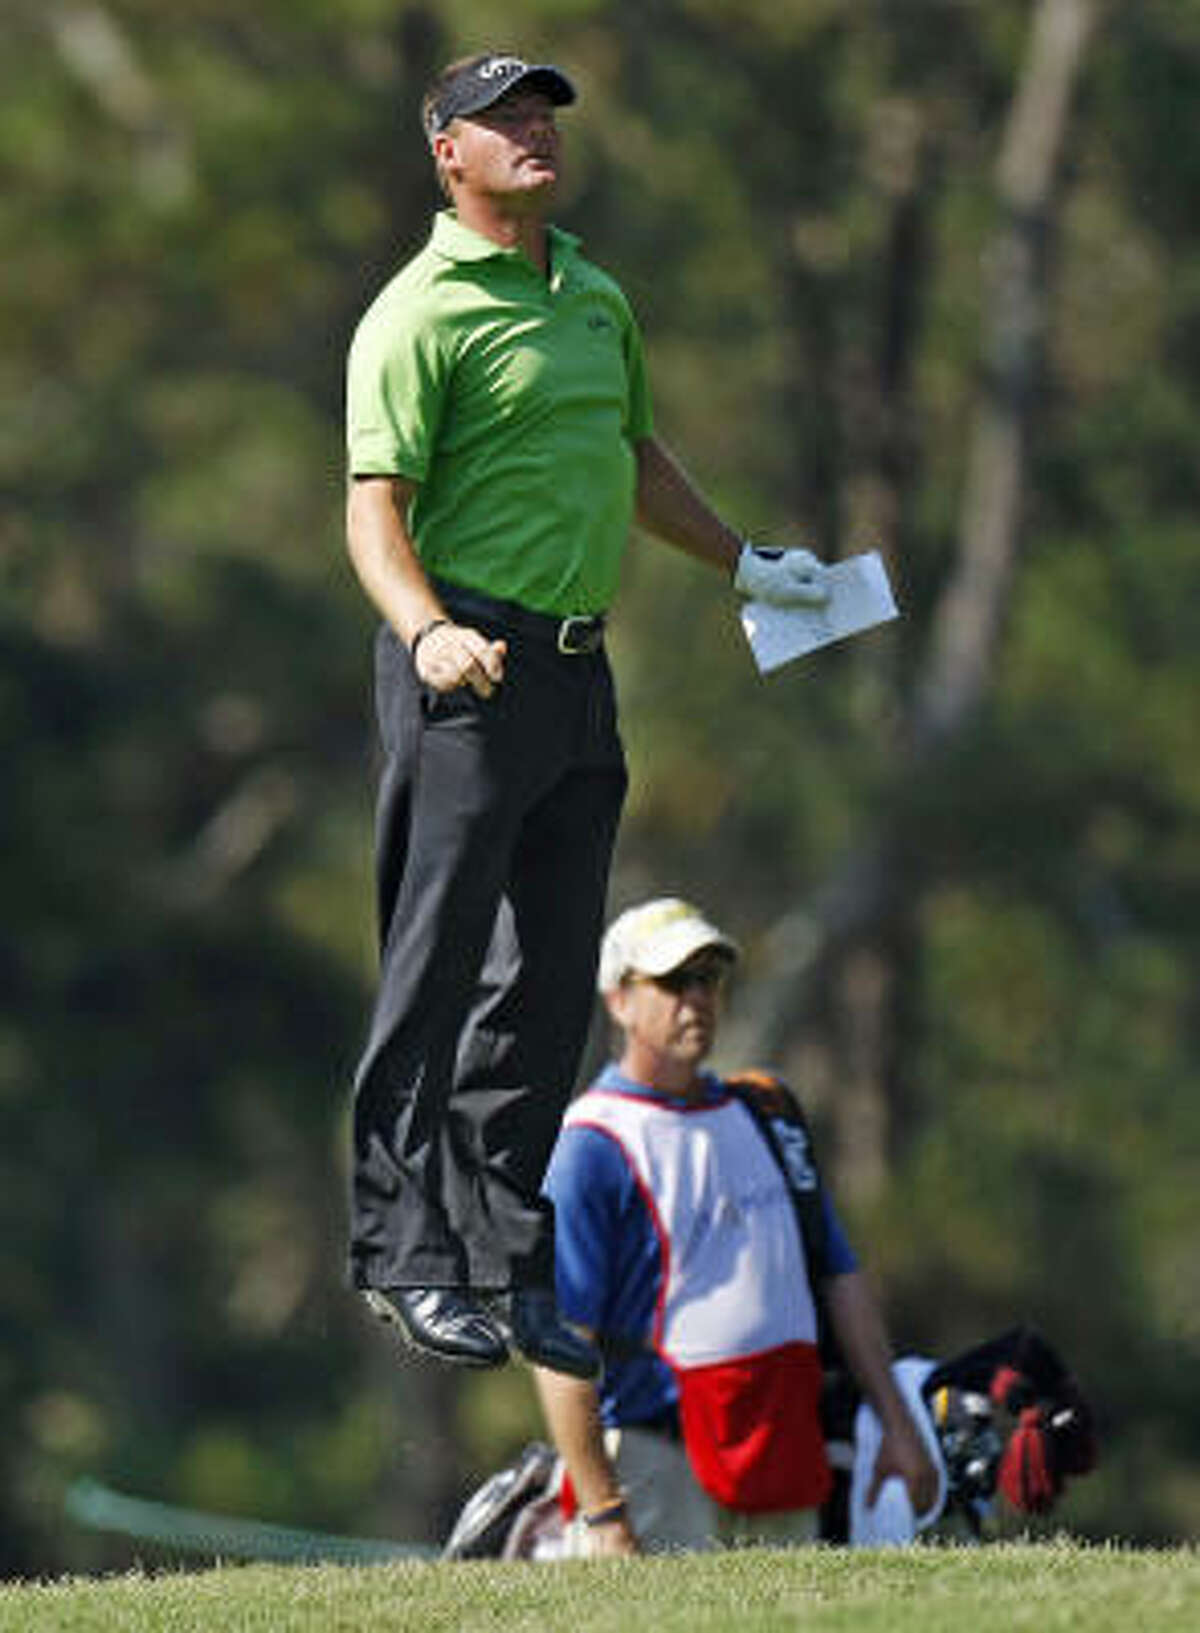 TPC leader Alex Cejka jumps to get a better view of the 12th hole.